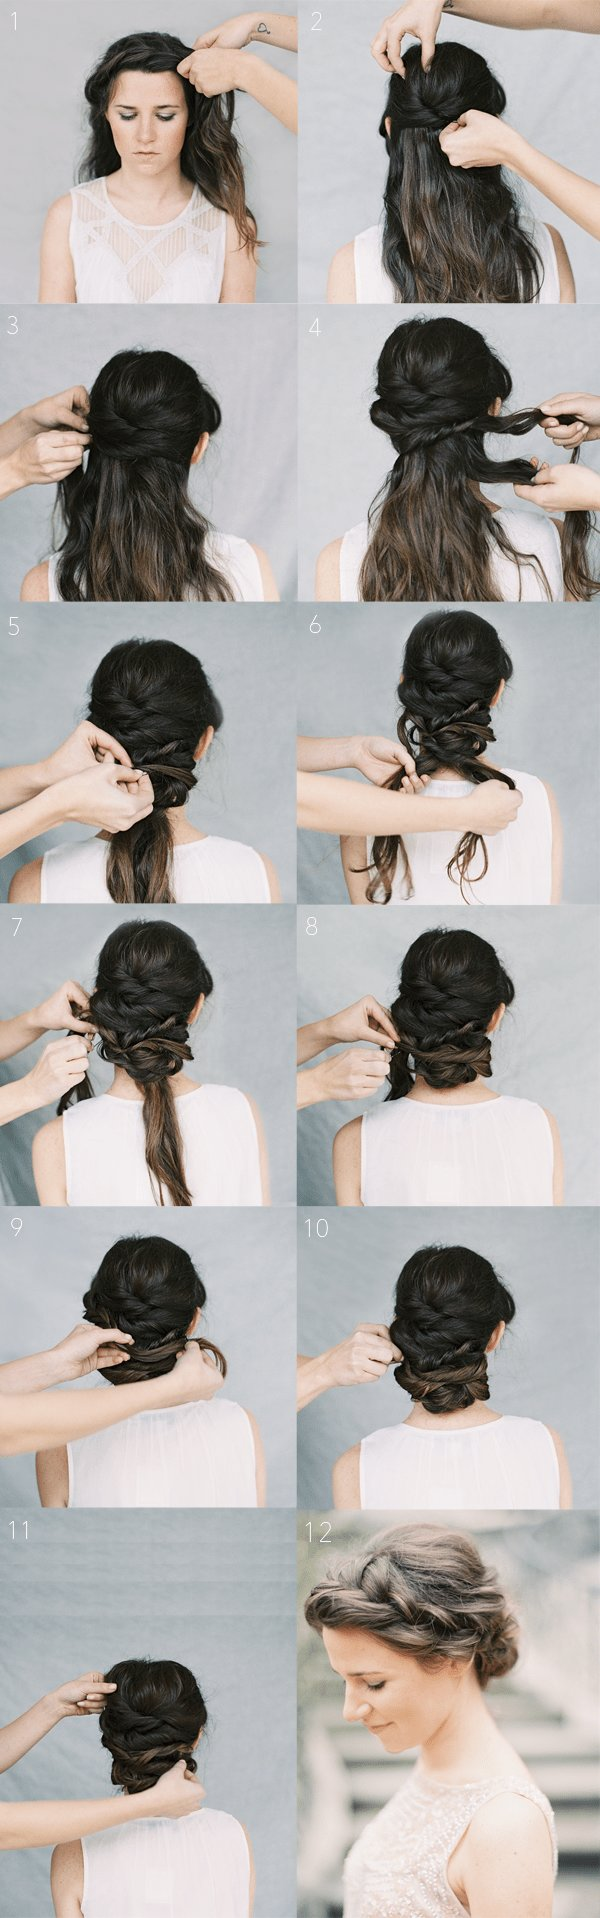 New Crown Braid Chignon Tutorial Once Wed Ideas With Pictures